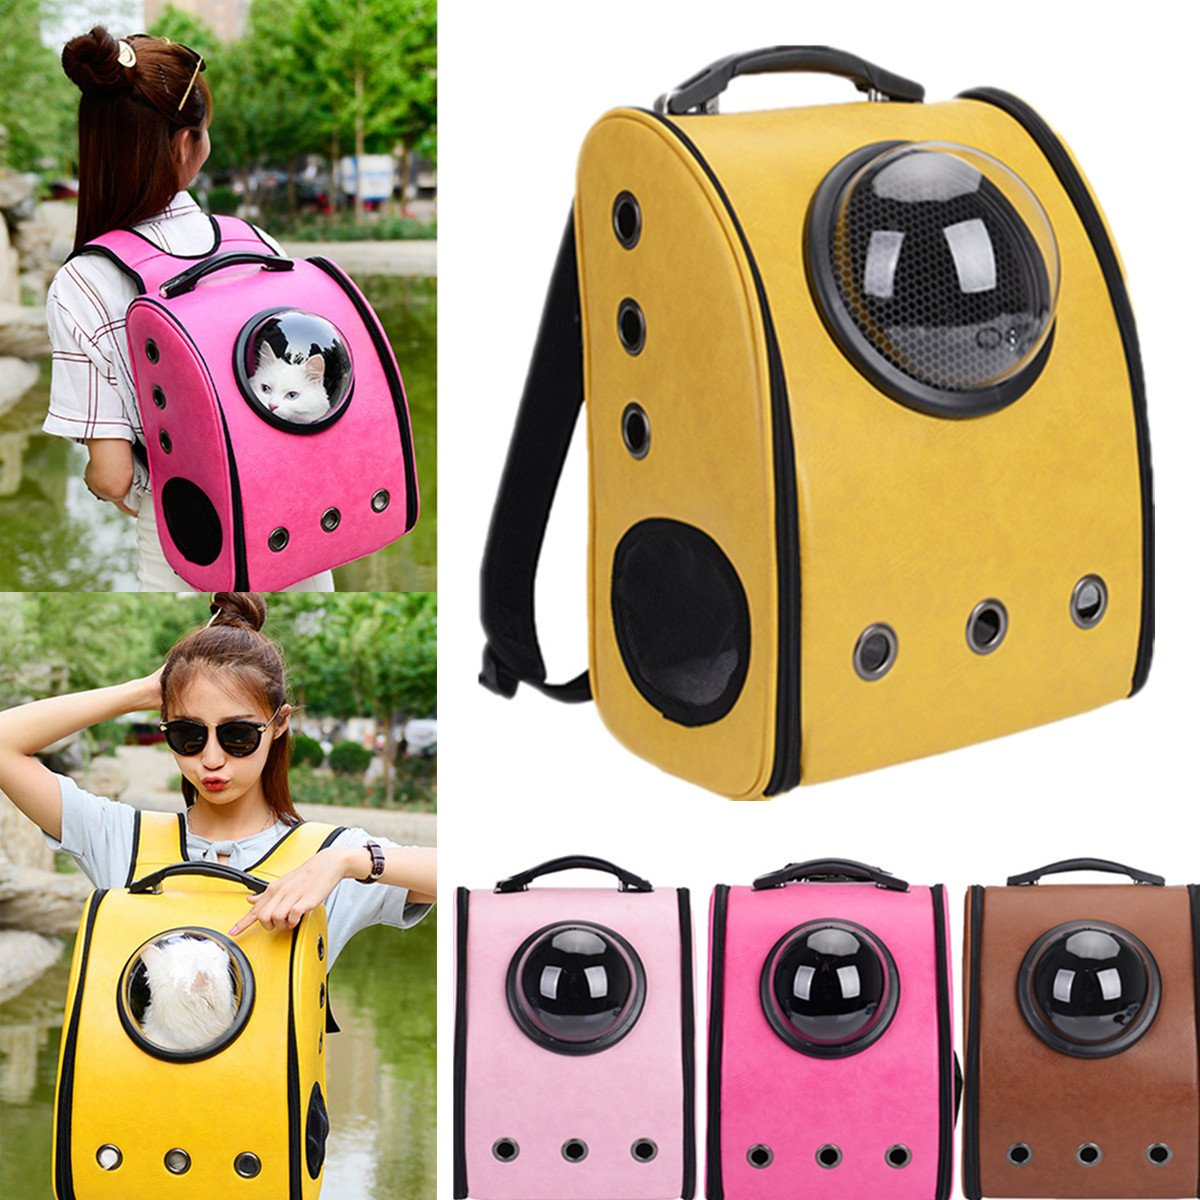 Global Brands Online Dog Cat Pet Astronaut Capsule Backpack Carrier Case with Transparent Breathable Cover